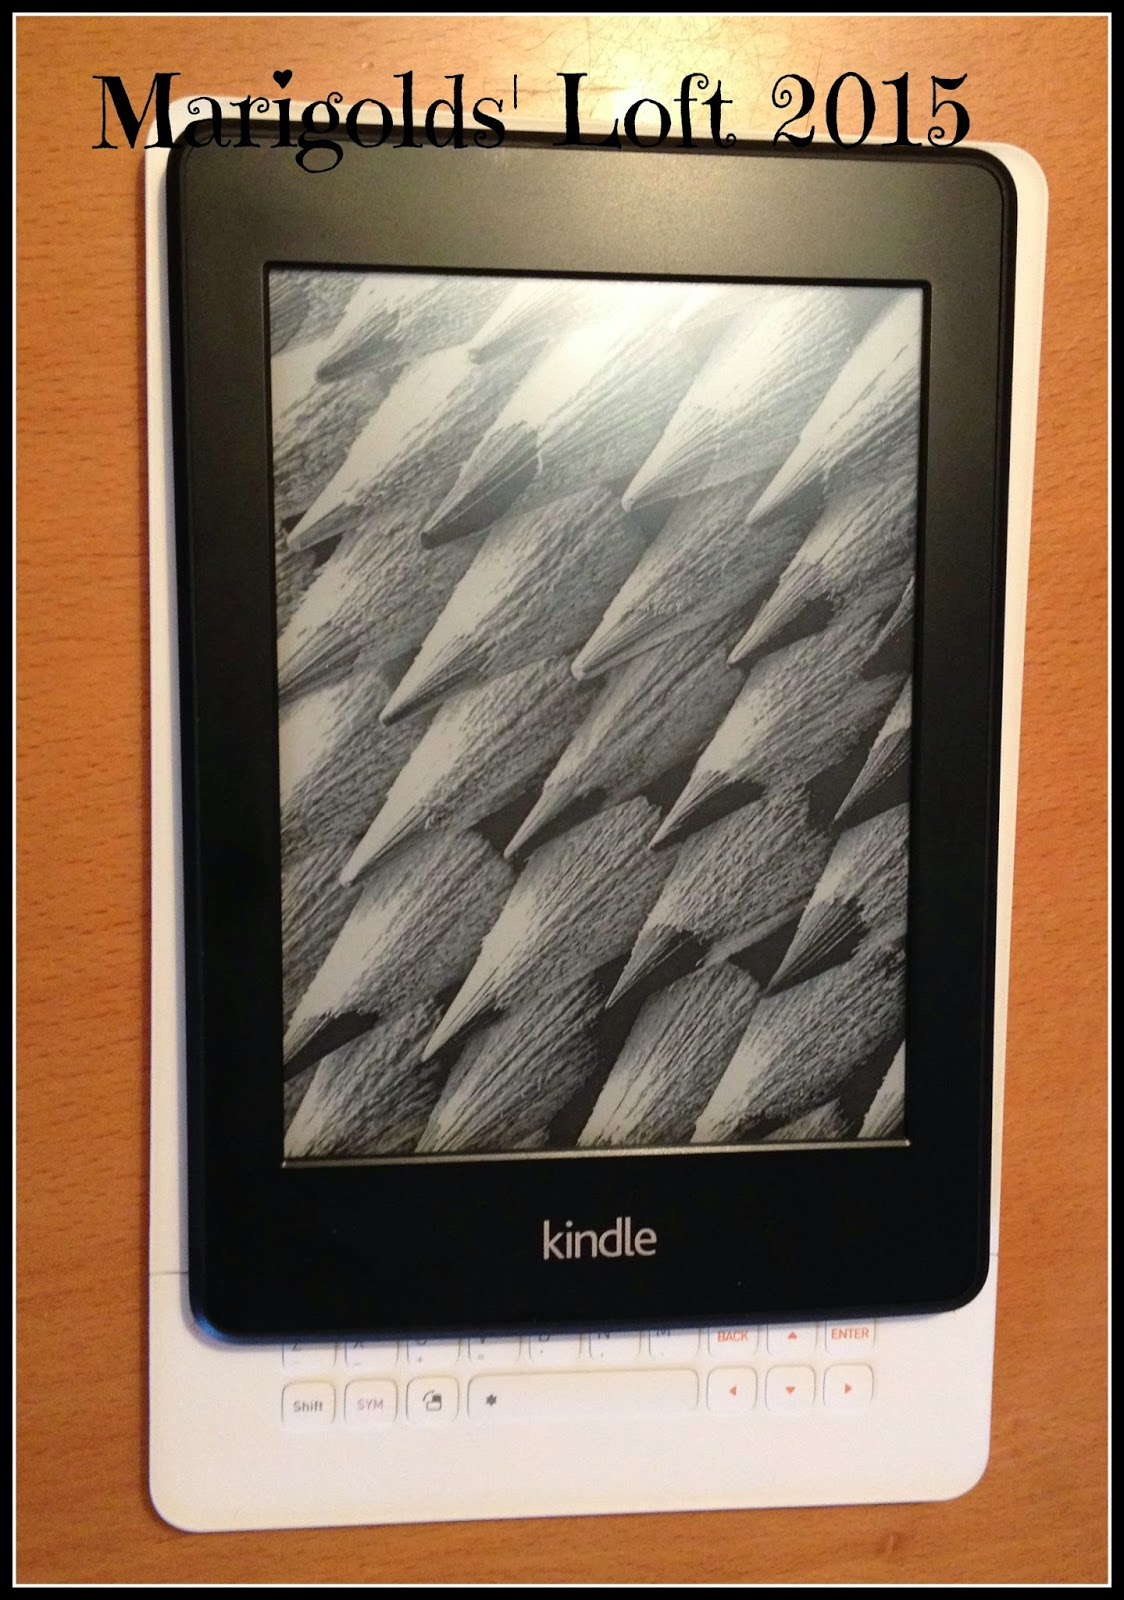 Kindle Paperwhite vs iRiver